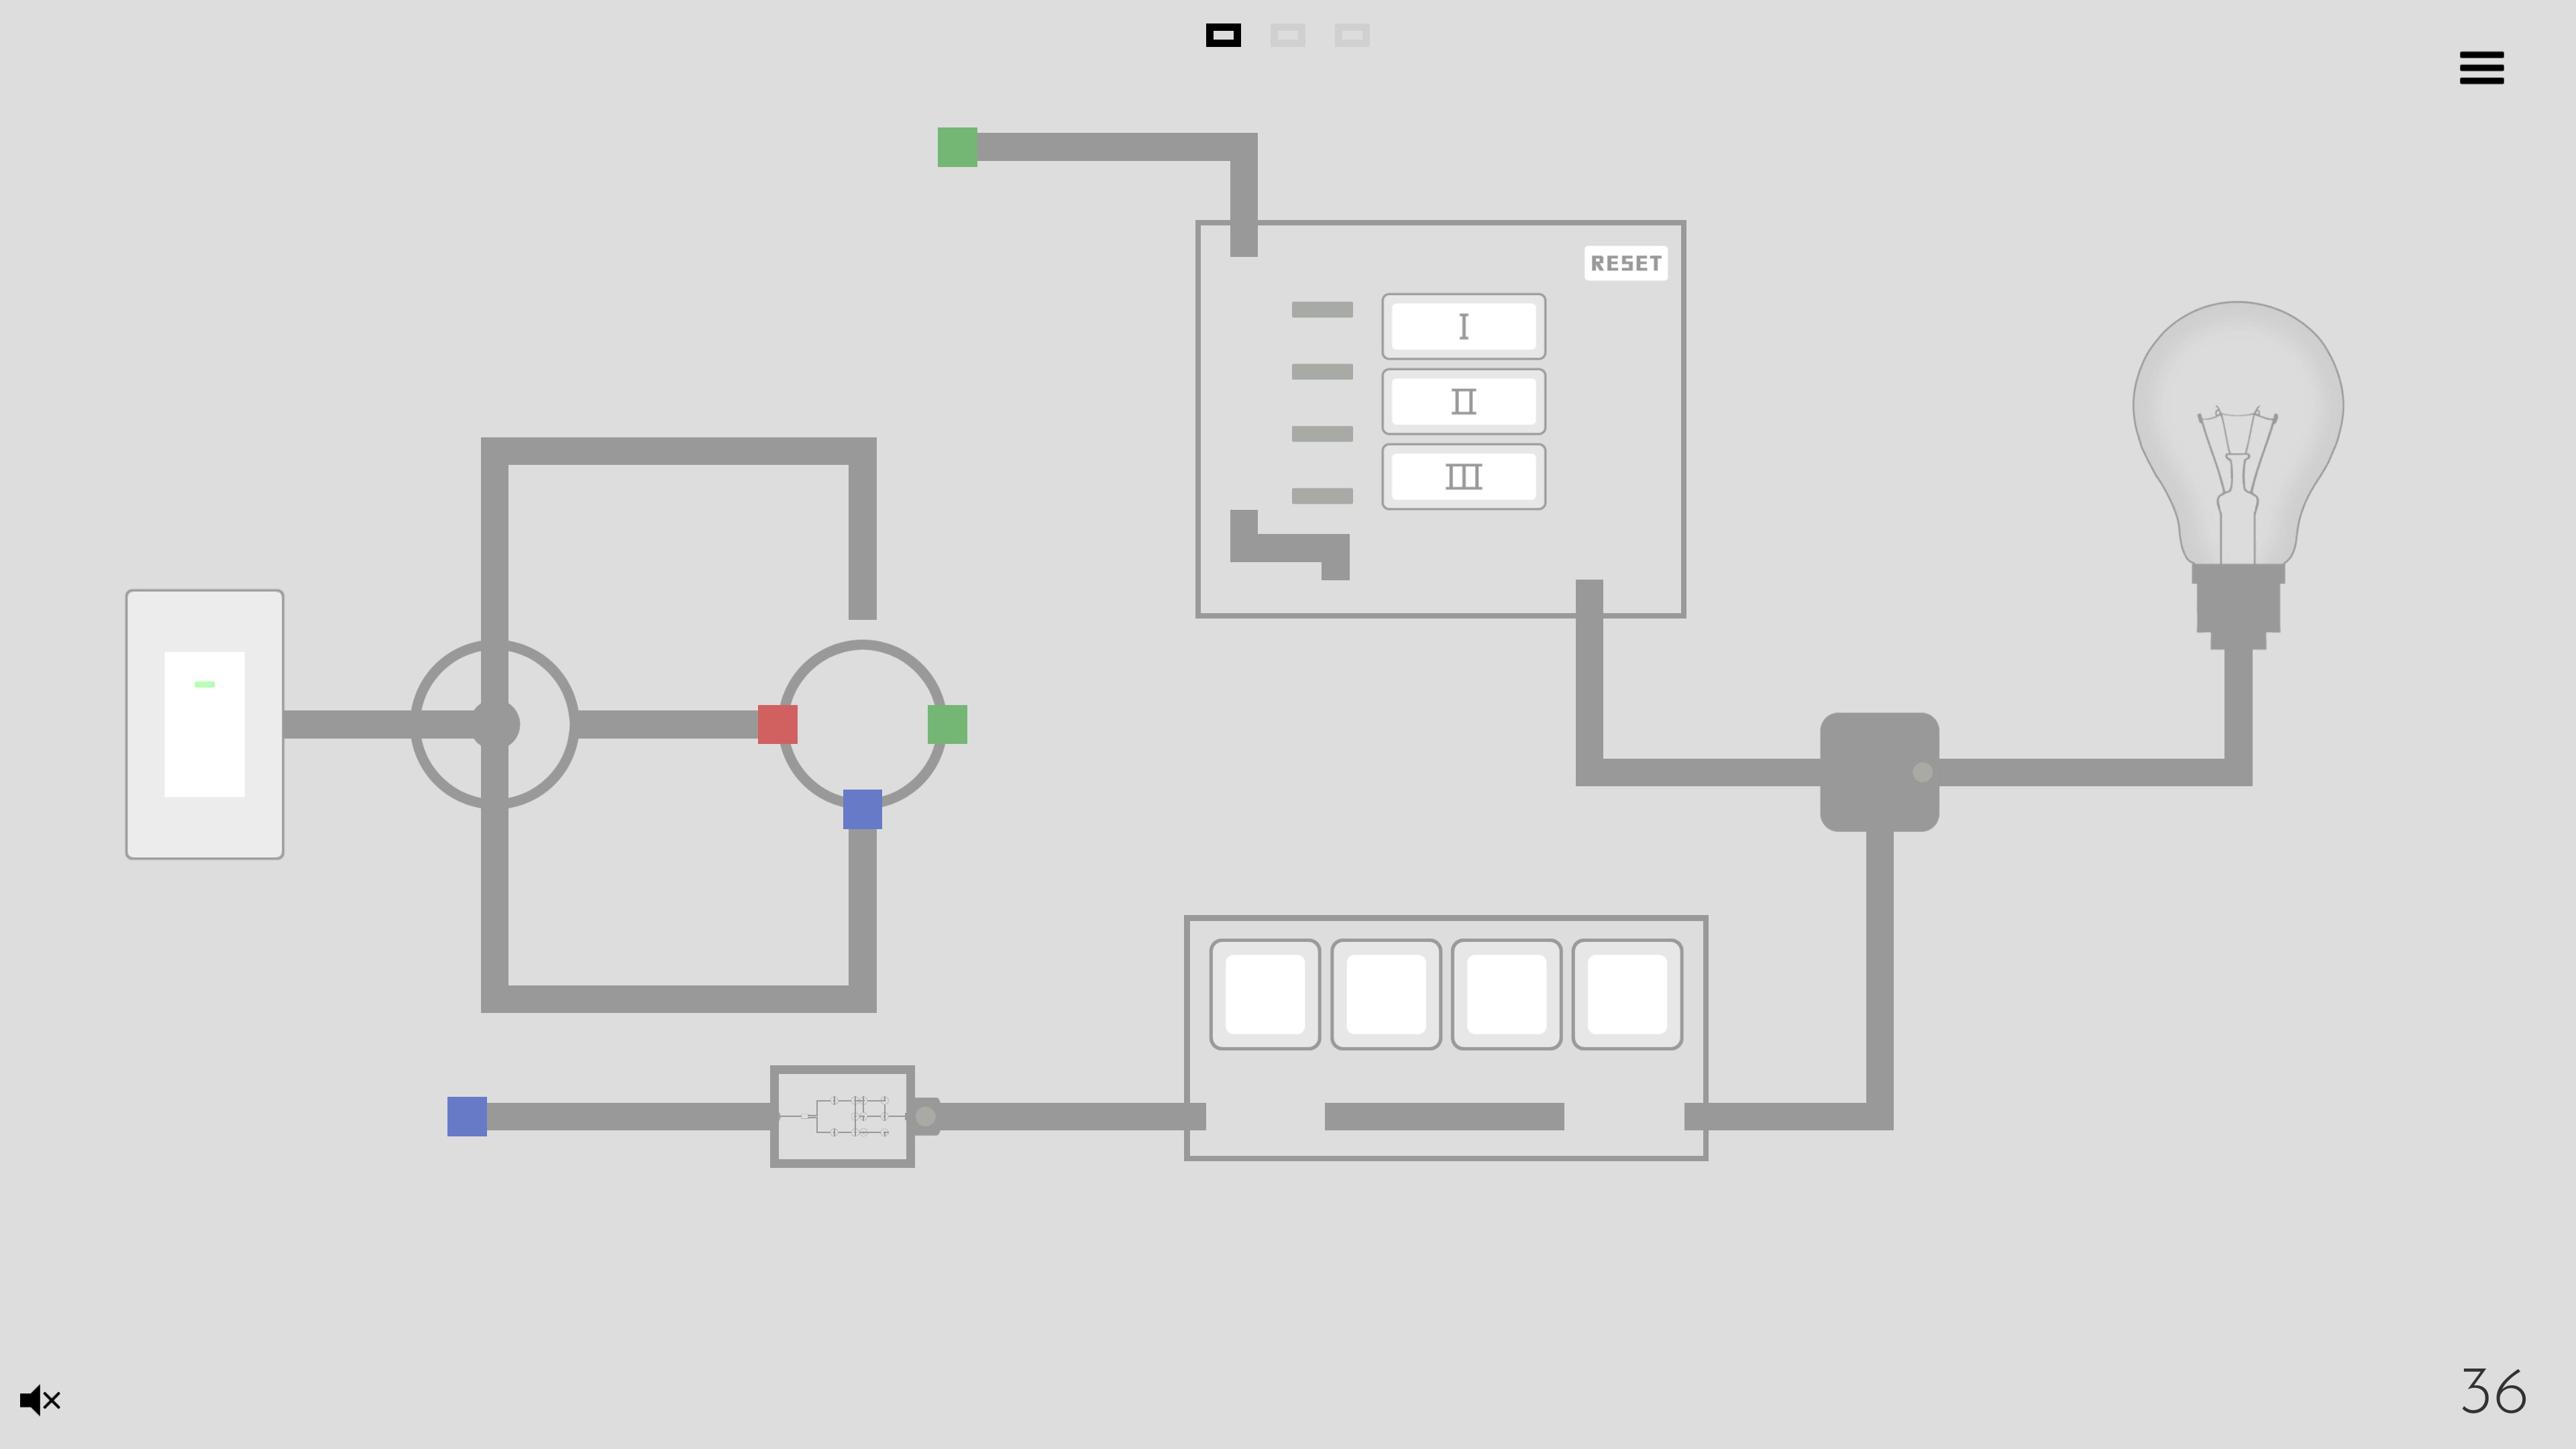 Turn on the light. Circuit with a teleporter, alignment mini-puzzle, switch mini-puzzle, and an embedded circuit